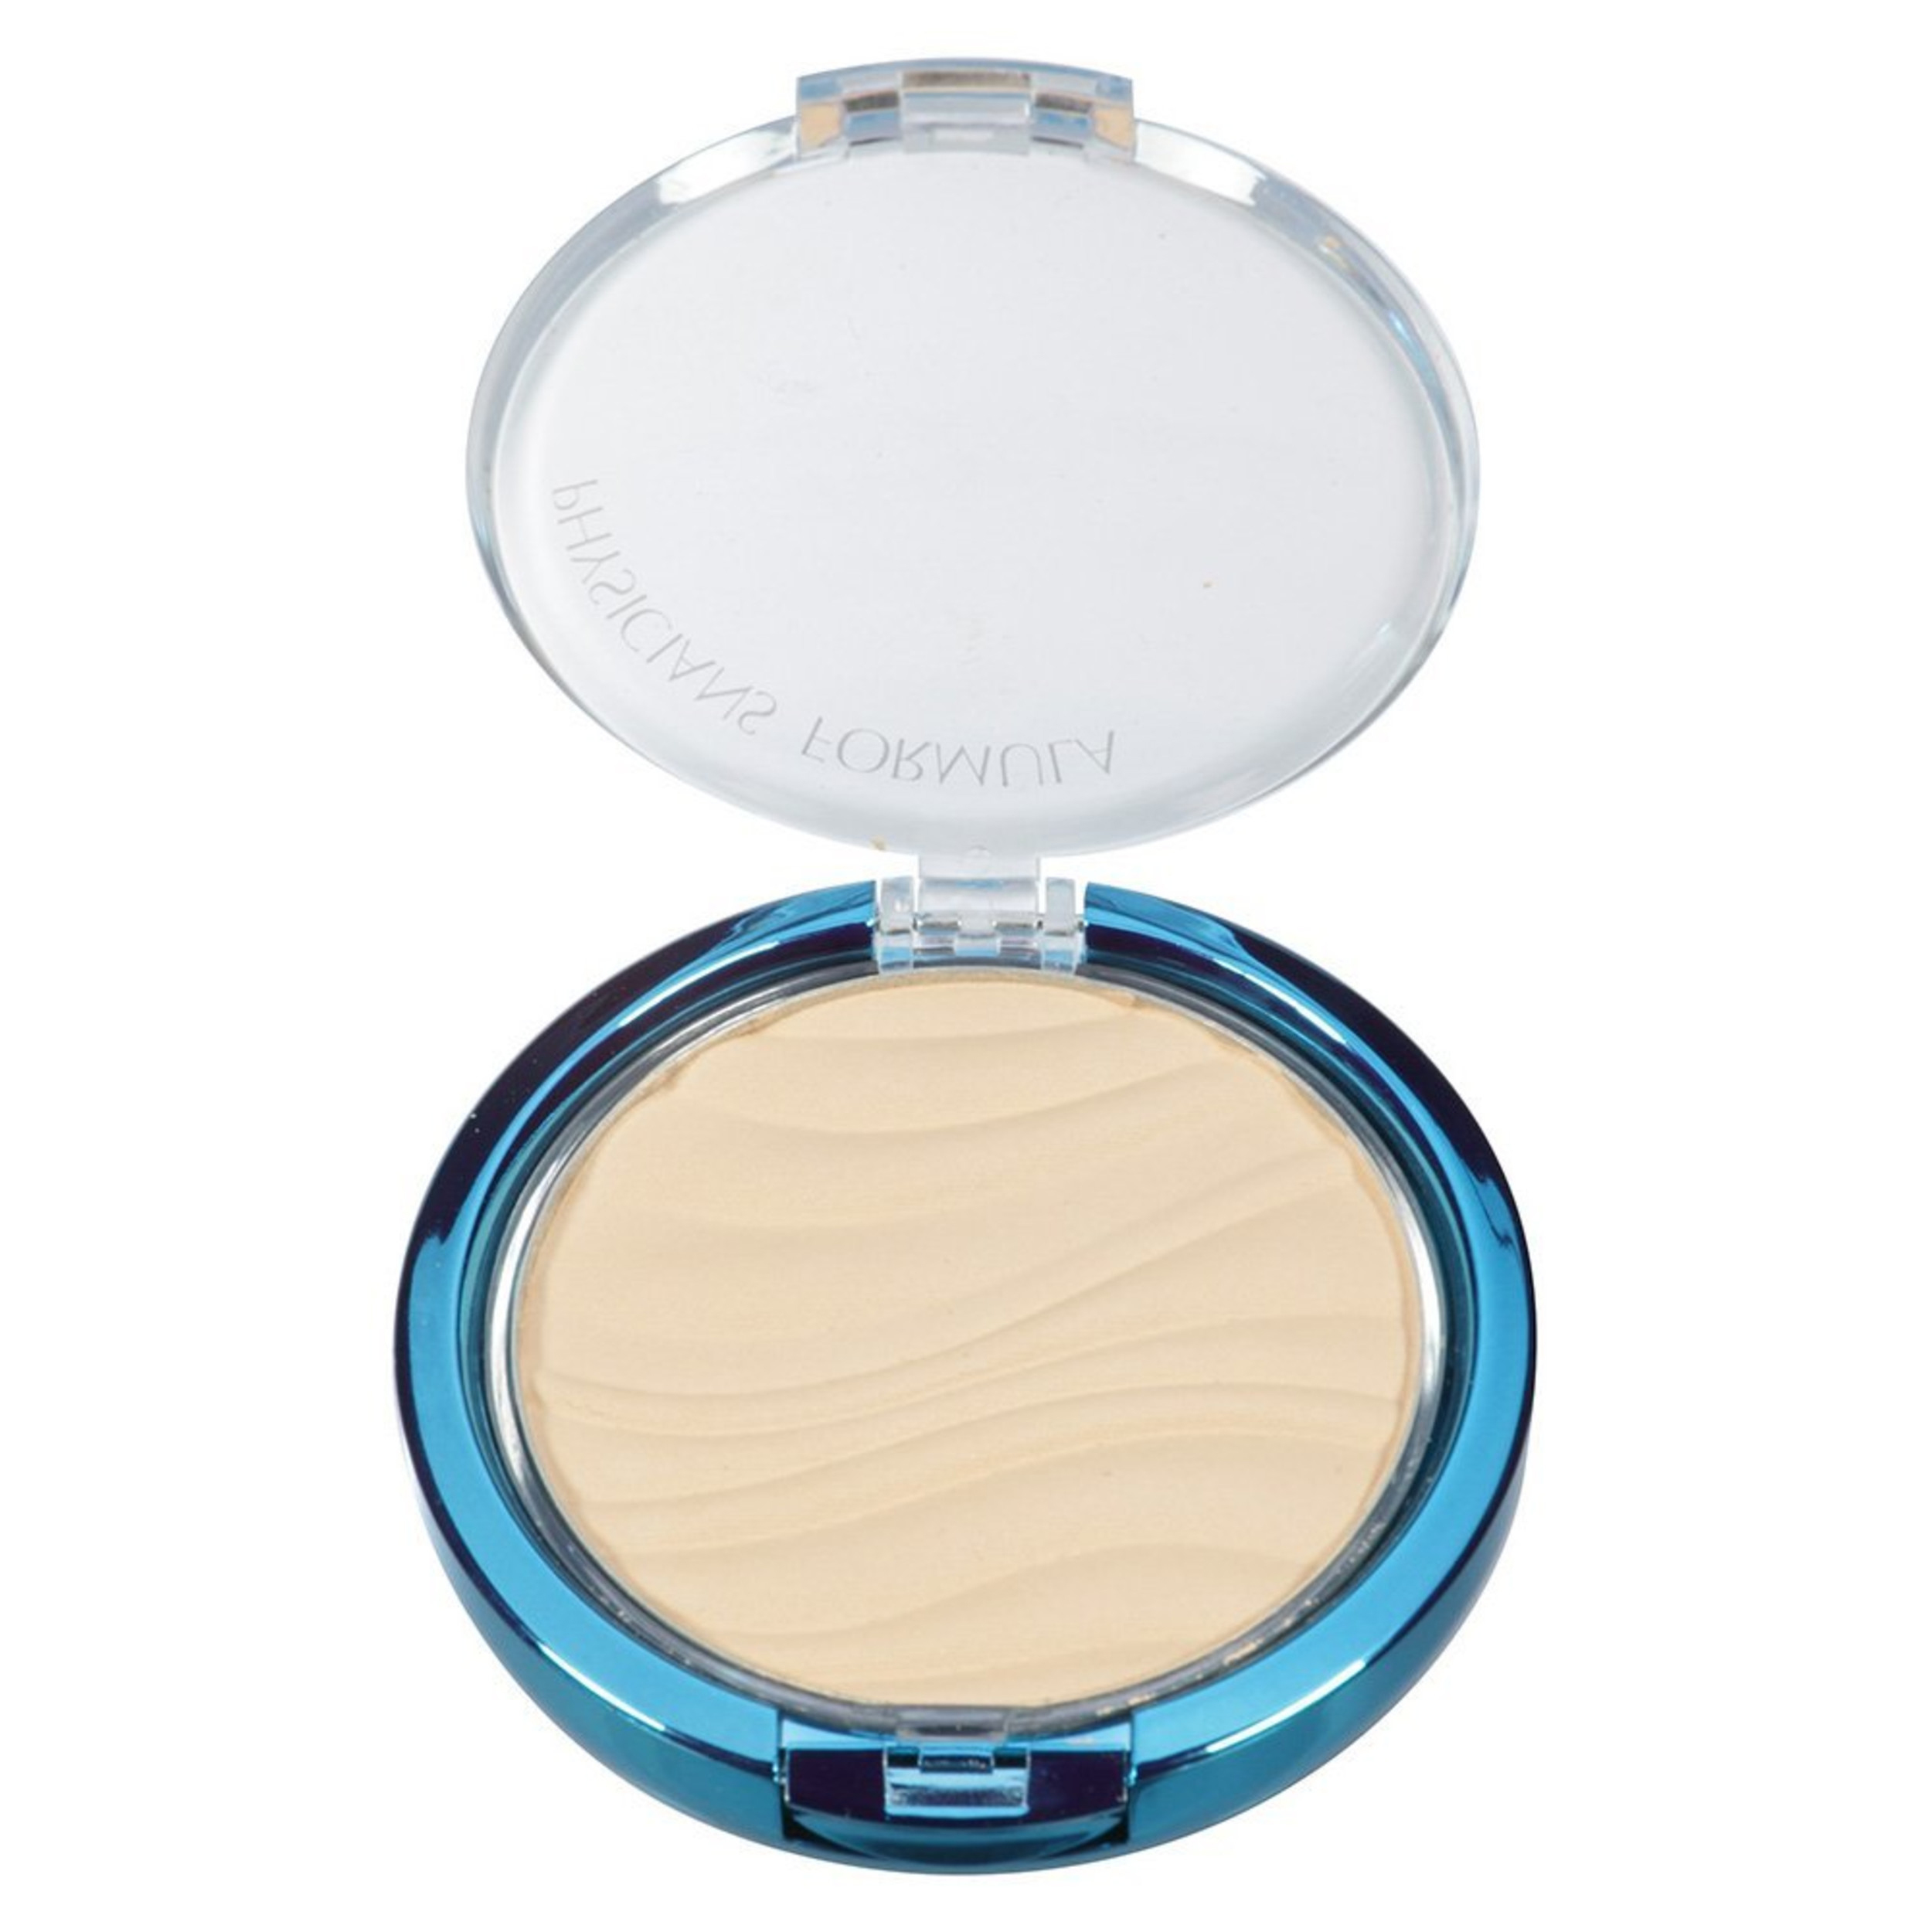 Physicians Formula Mineral Wear Talc-Free Mineral Makeup Airbrushing Pressed Powder photo